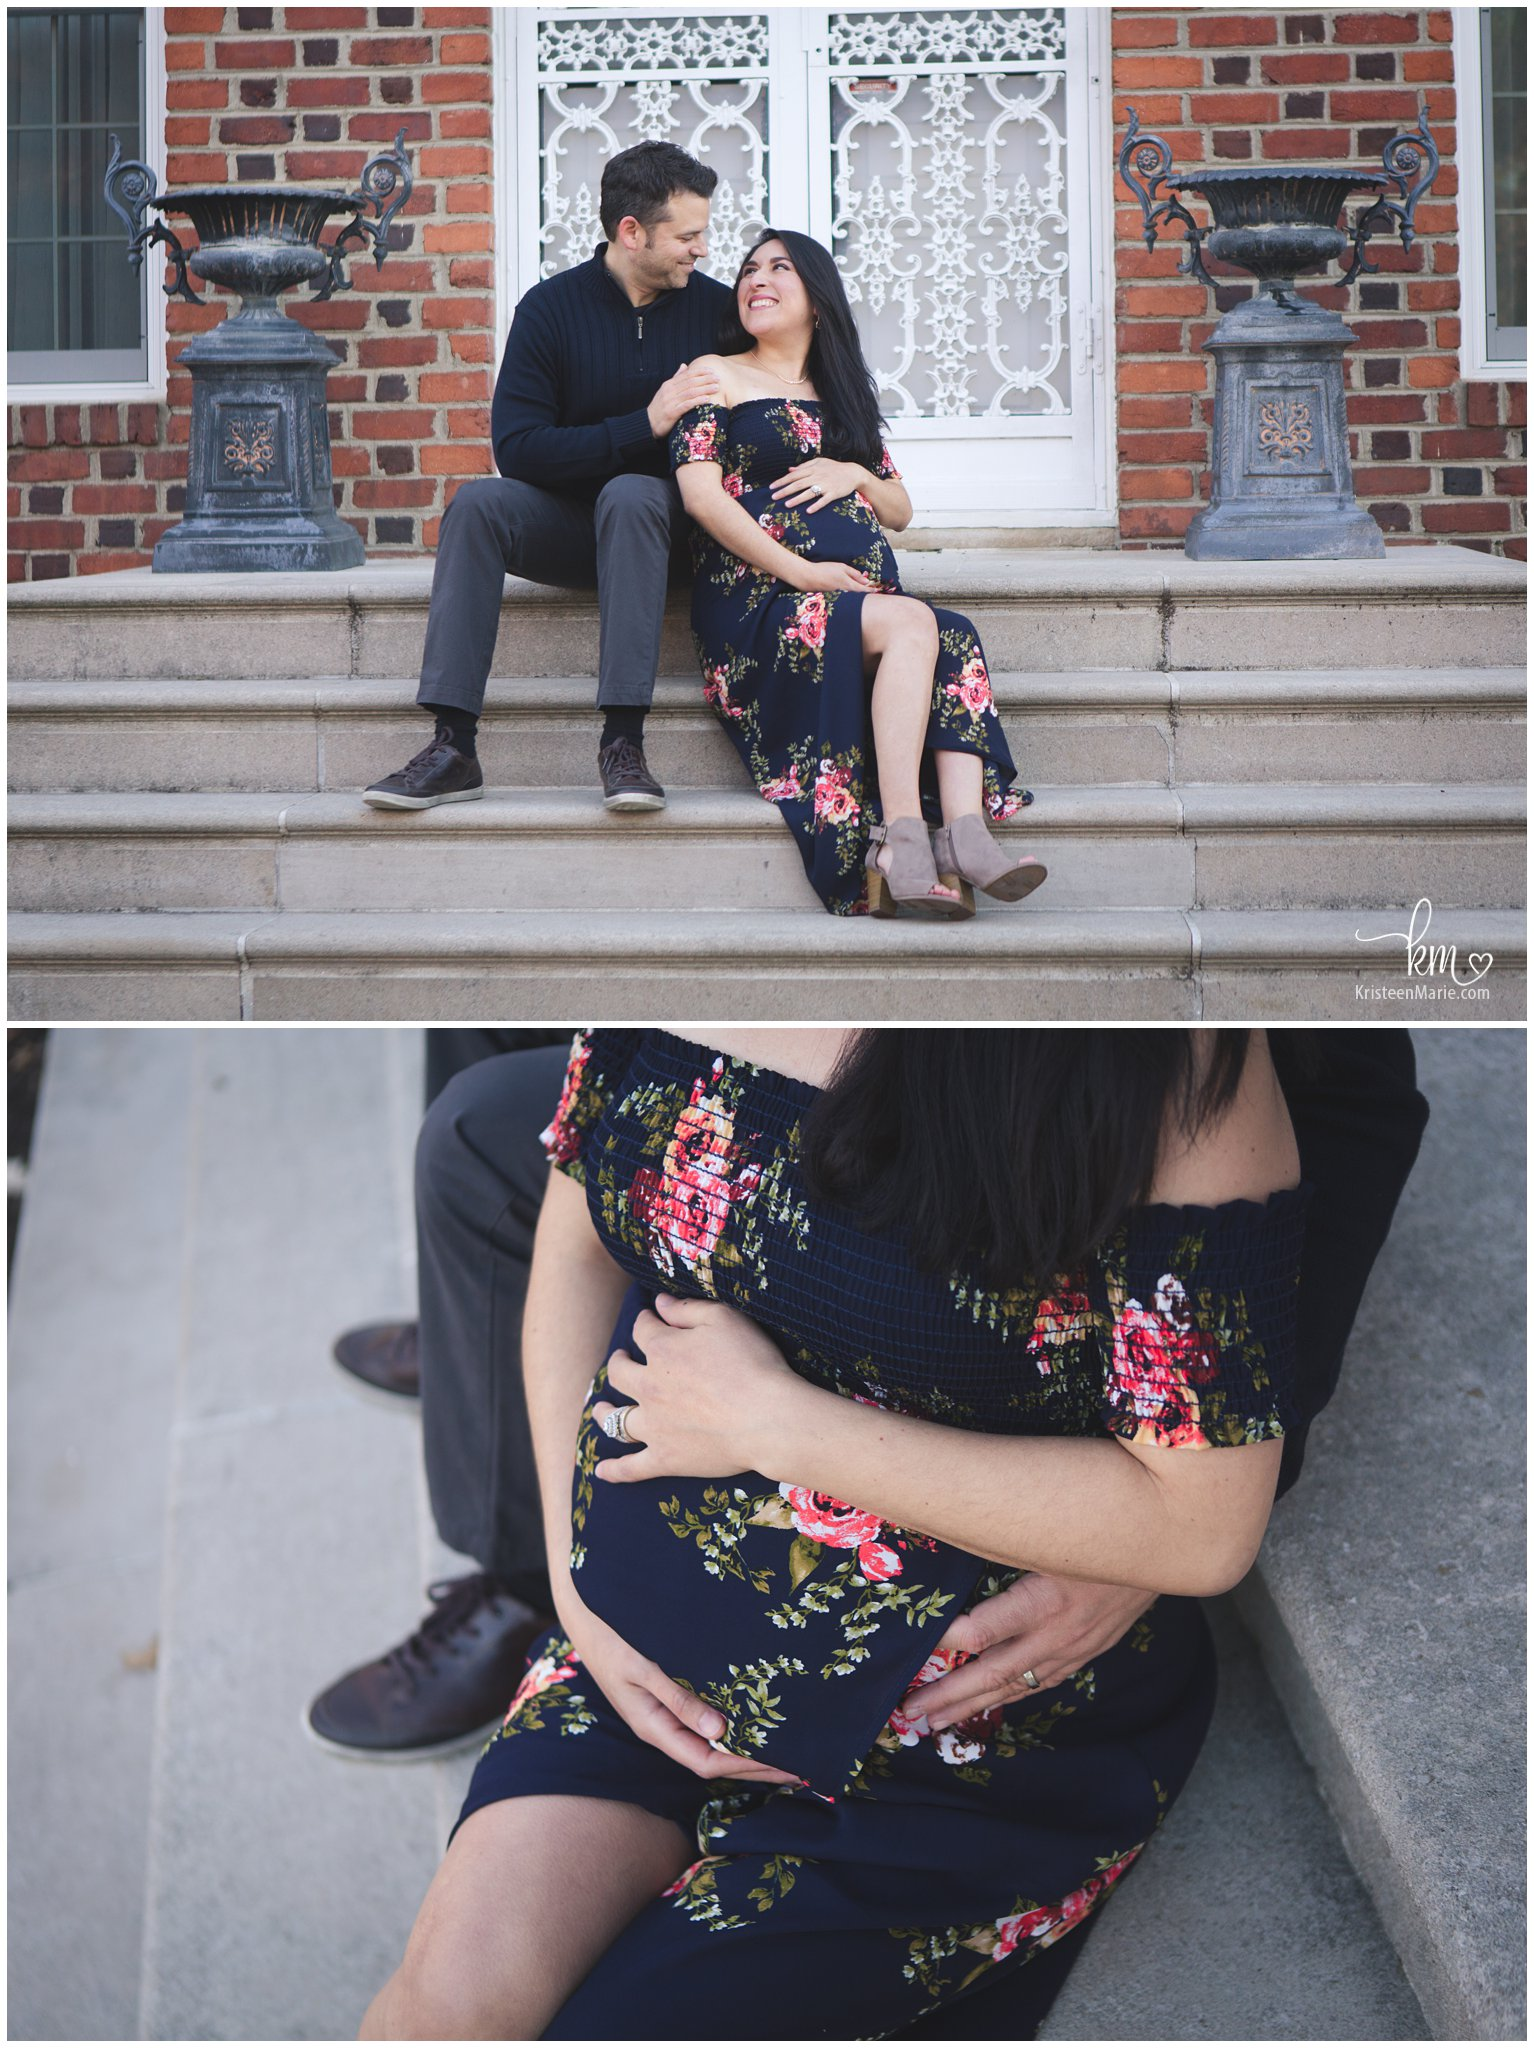 Maternity and newborn photography in Indianapolis, IN